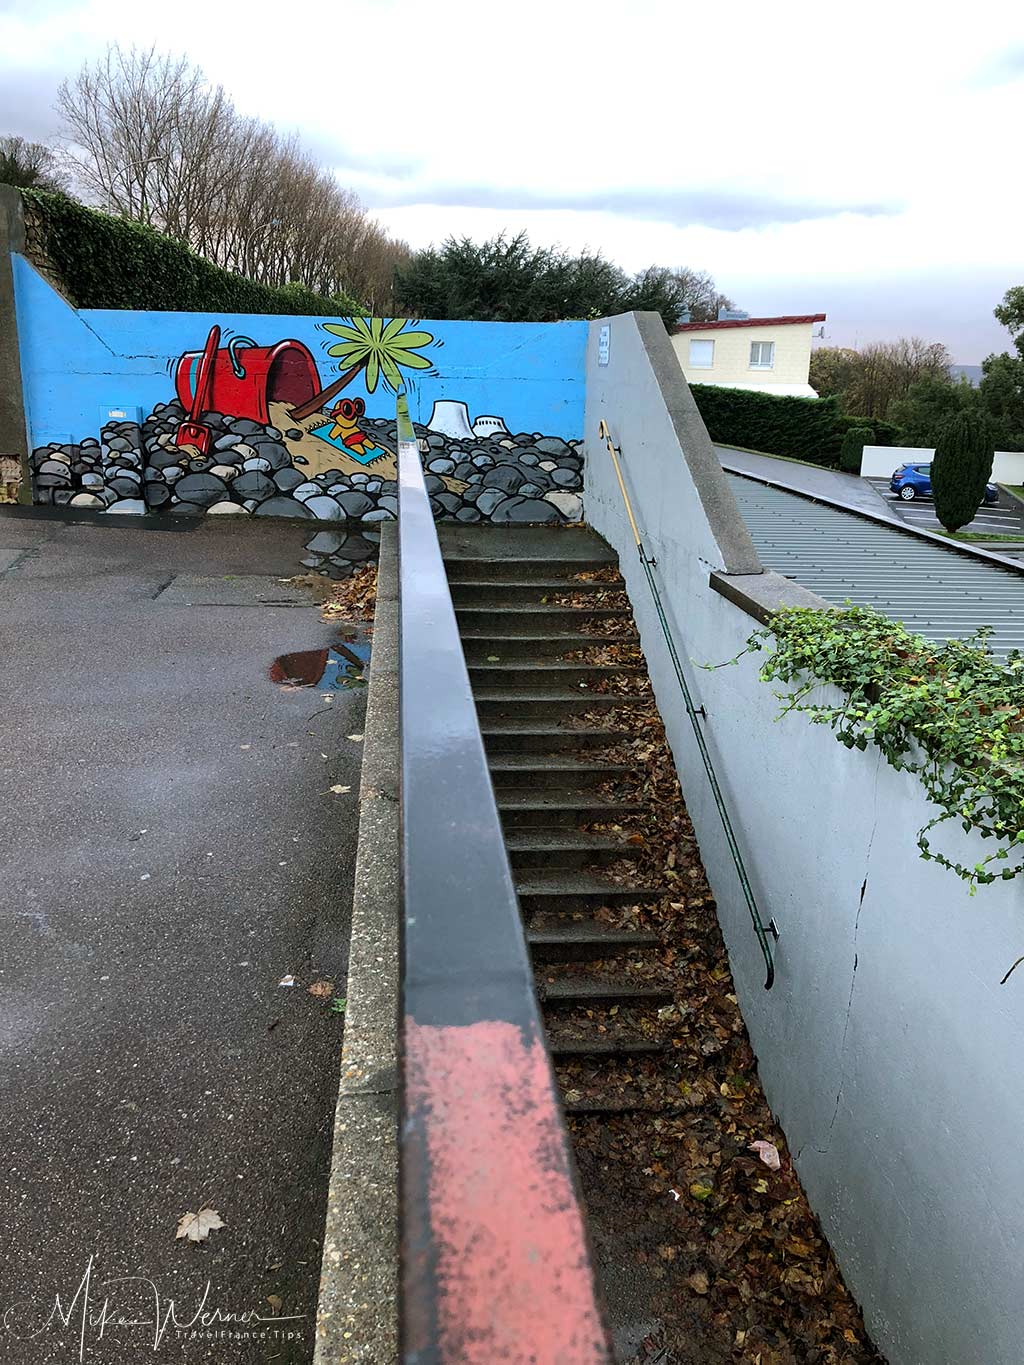 """The """"Escalier-Olivier-Senn"""" stairway is short but joins the """"Impasse-du-Beau-Site"""" stairway. At the top you'll find one of the famous Gouzou art work."""